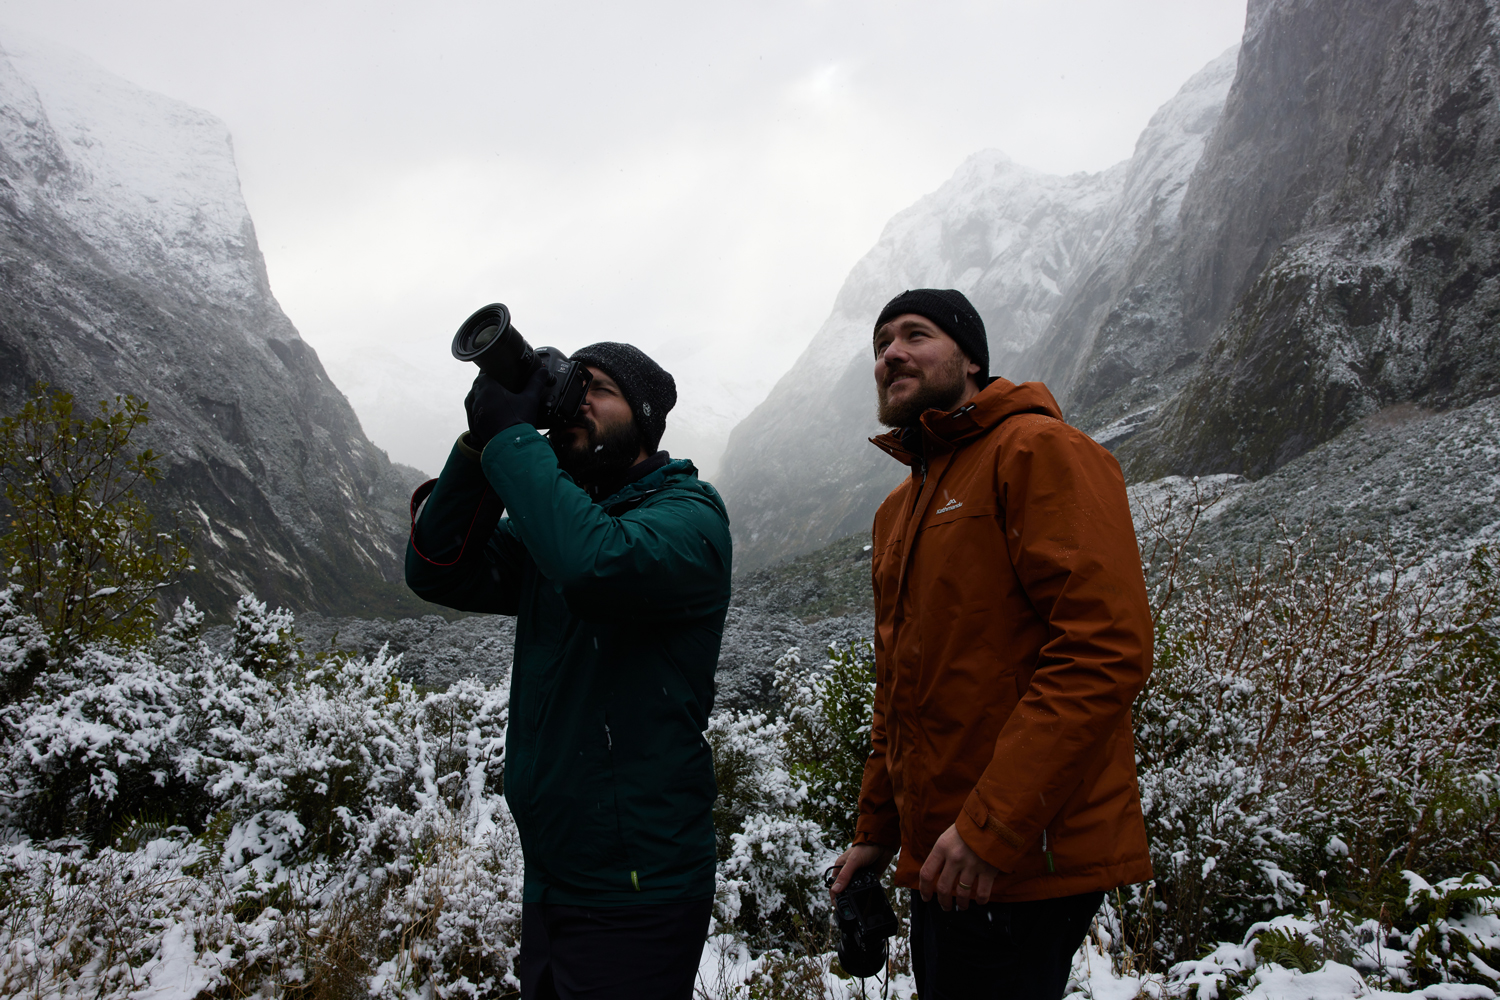 Fiordland Photography Workshop With William Patino.